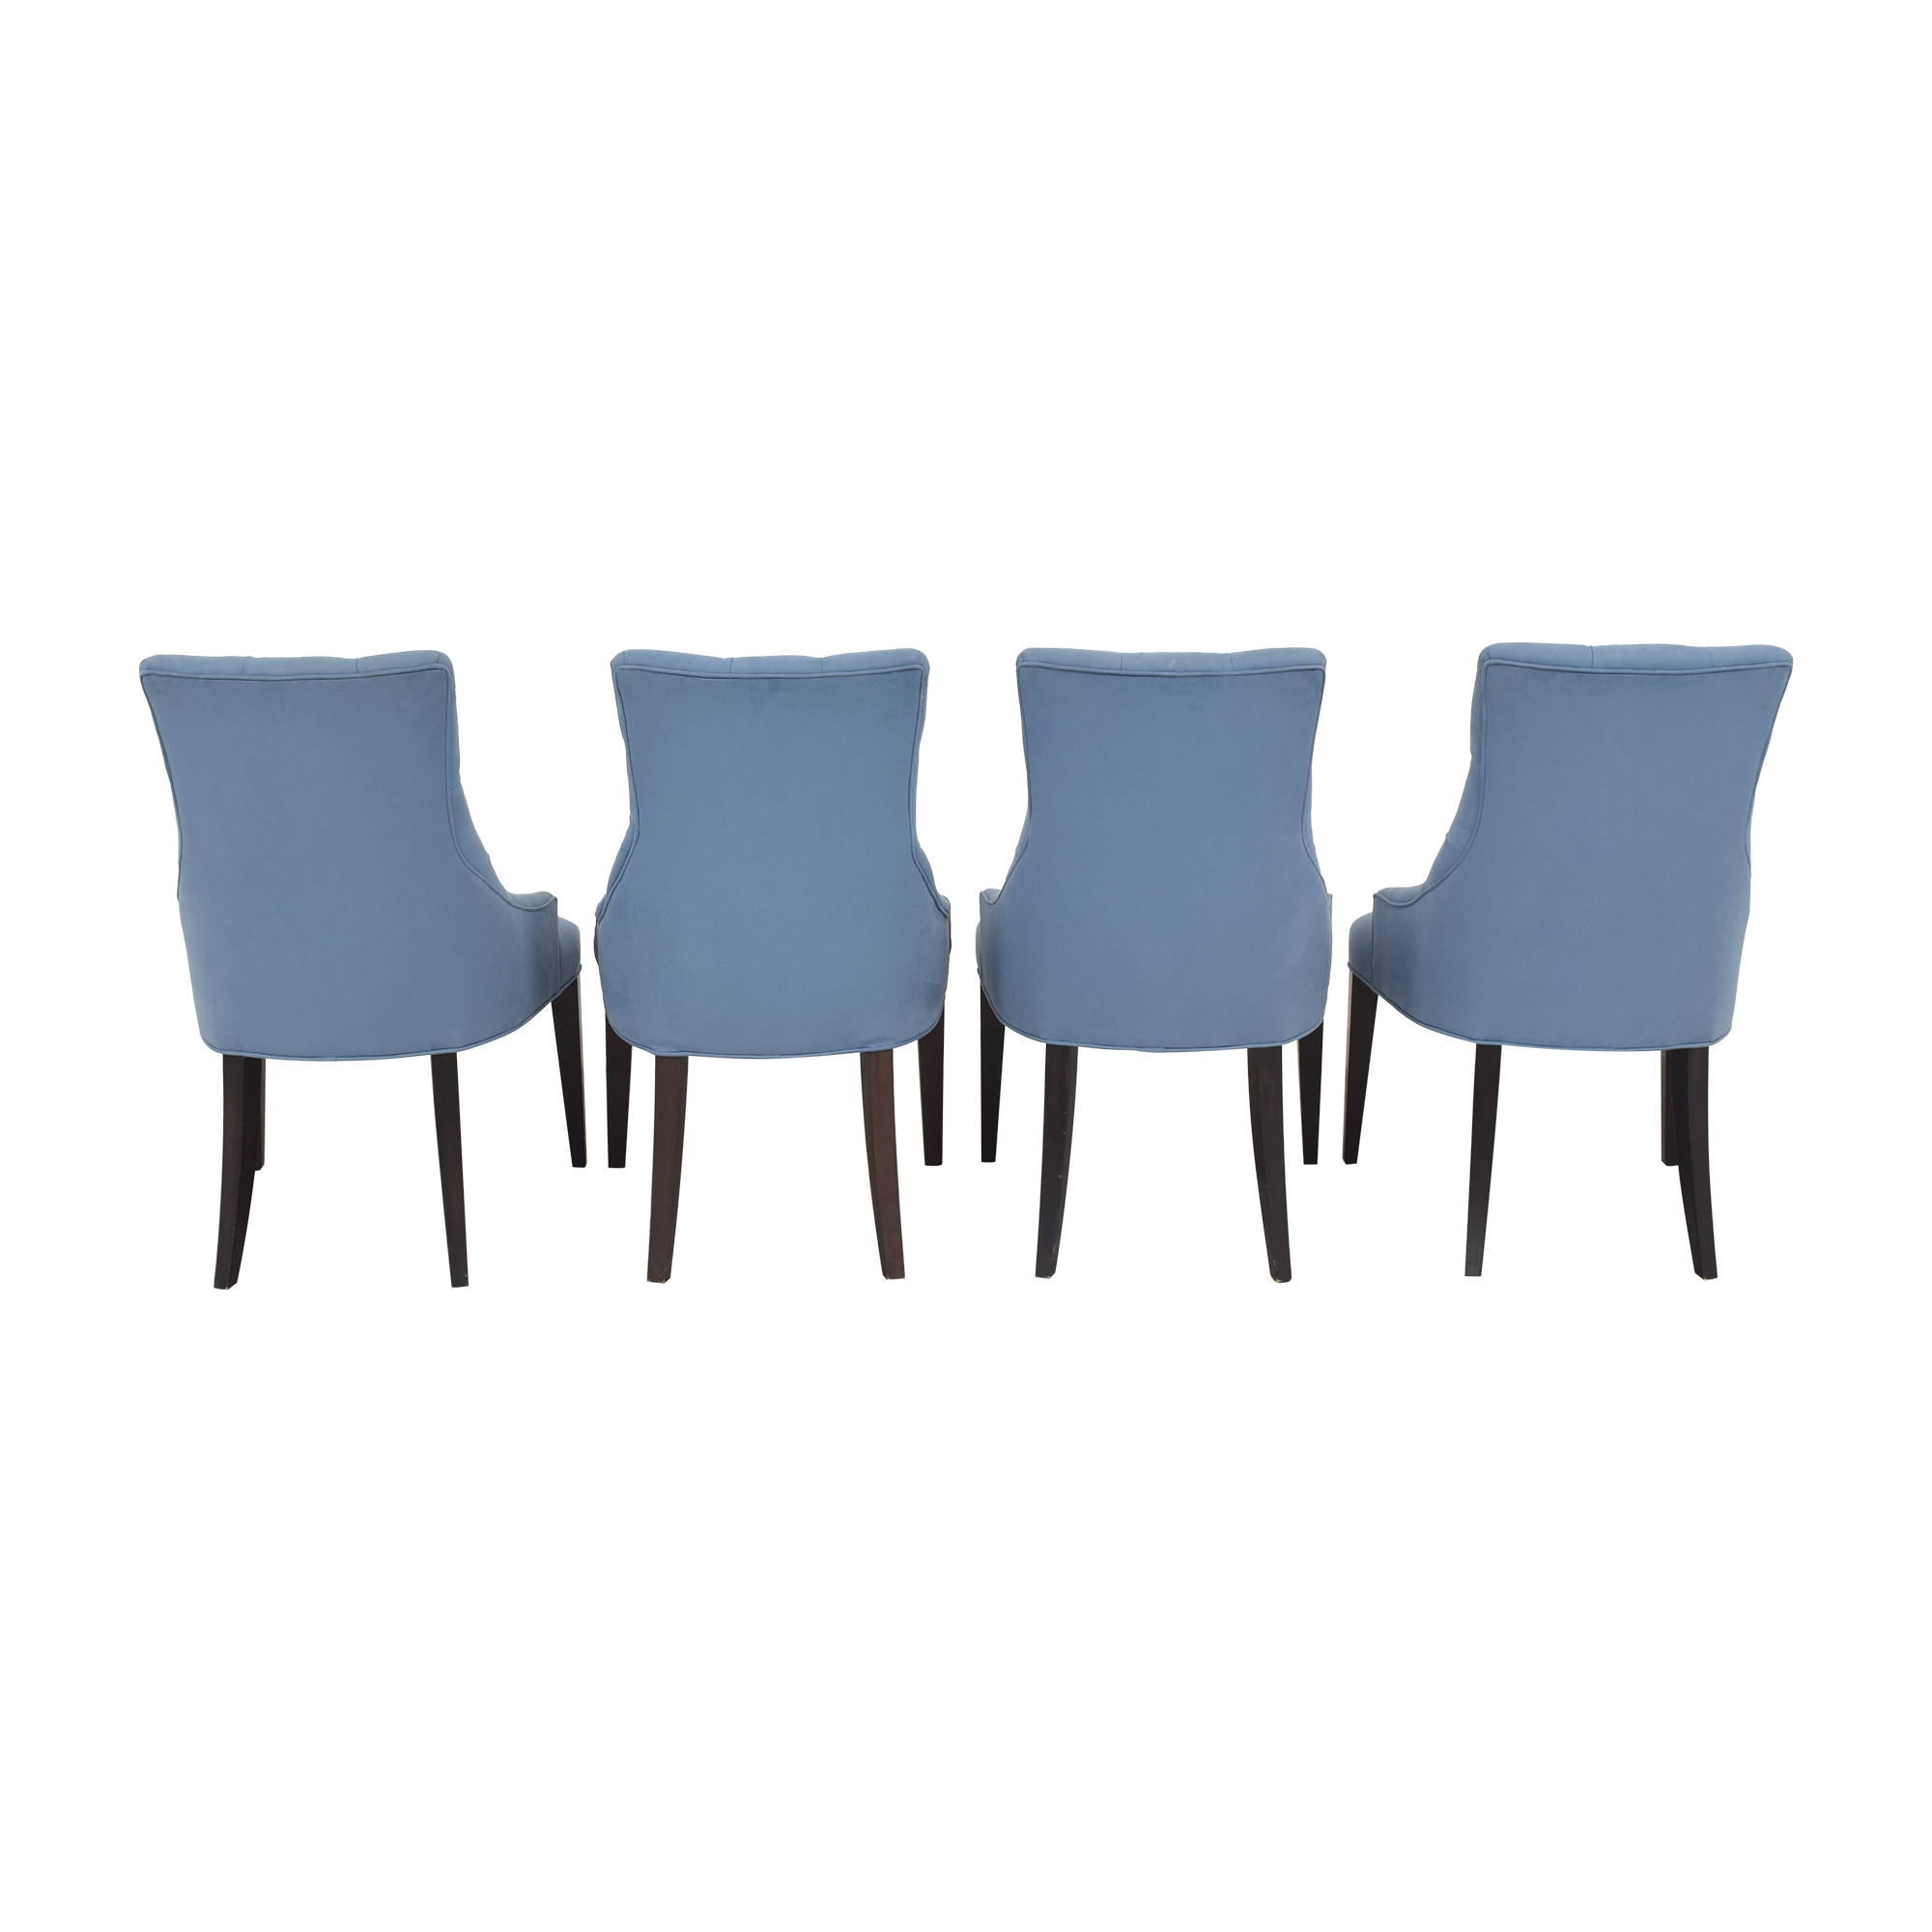 buy  Tufted Back Dining Chairs online